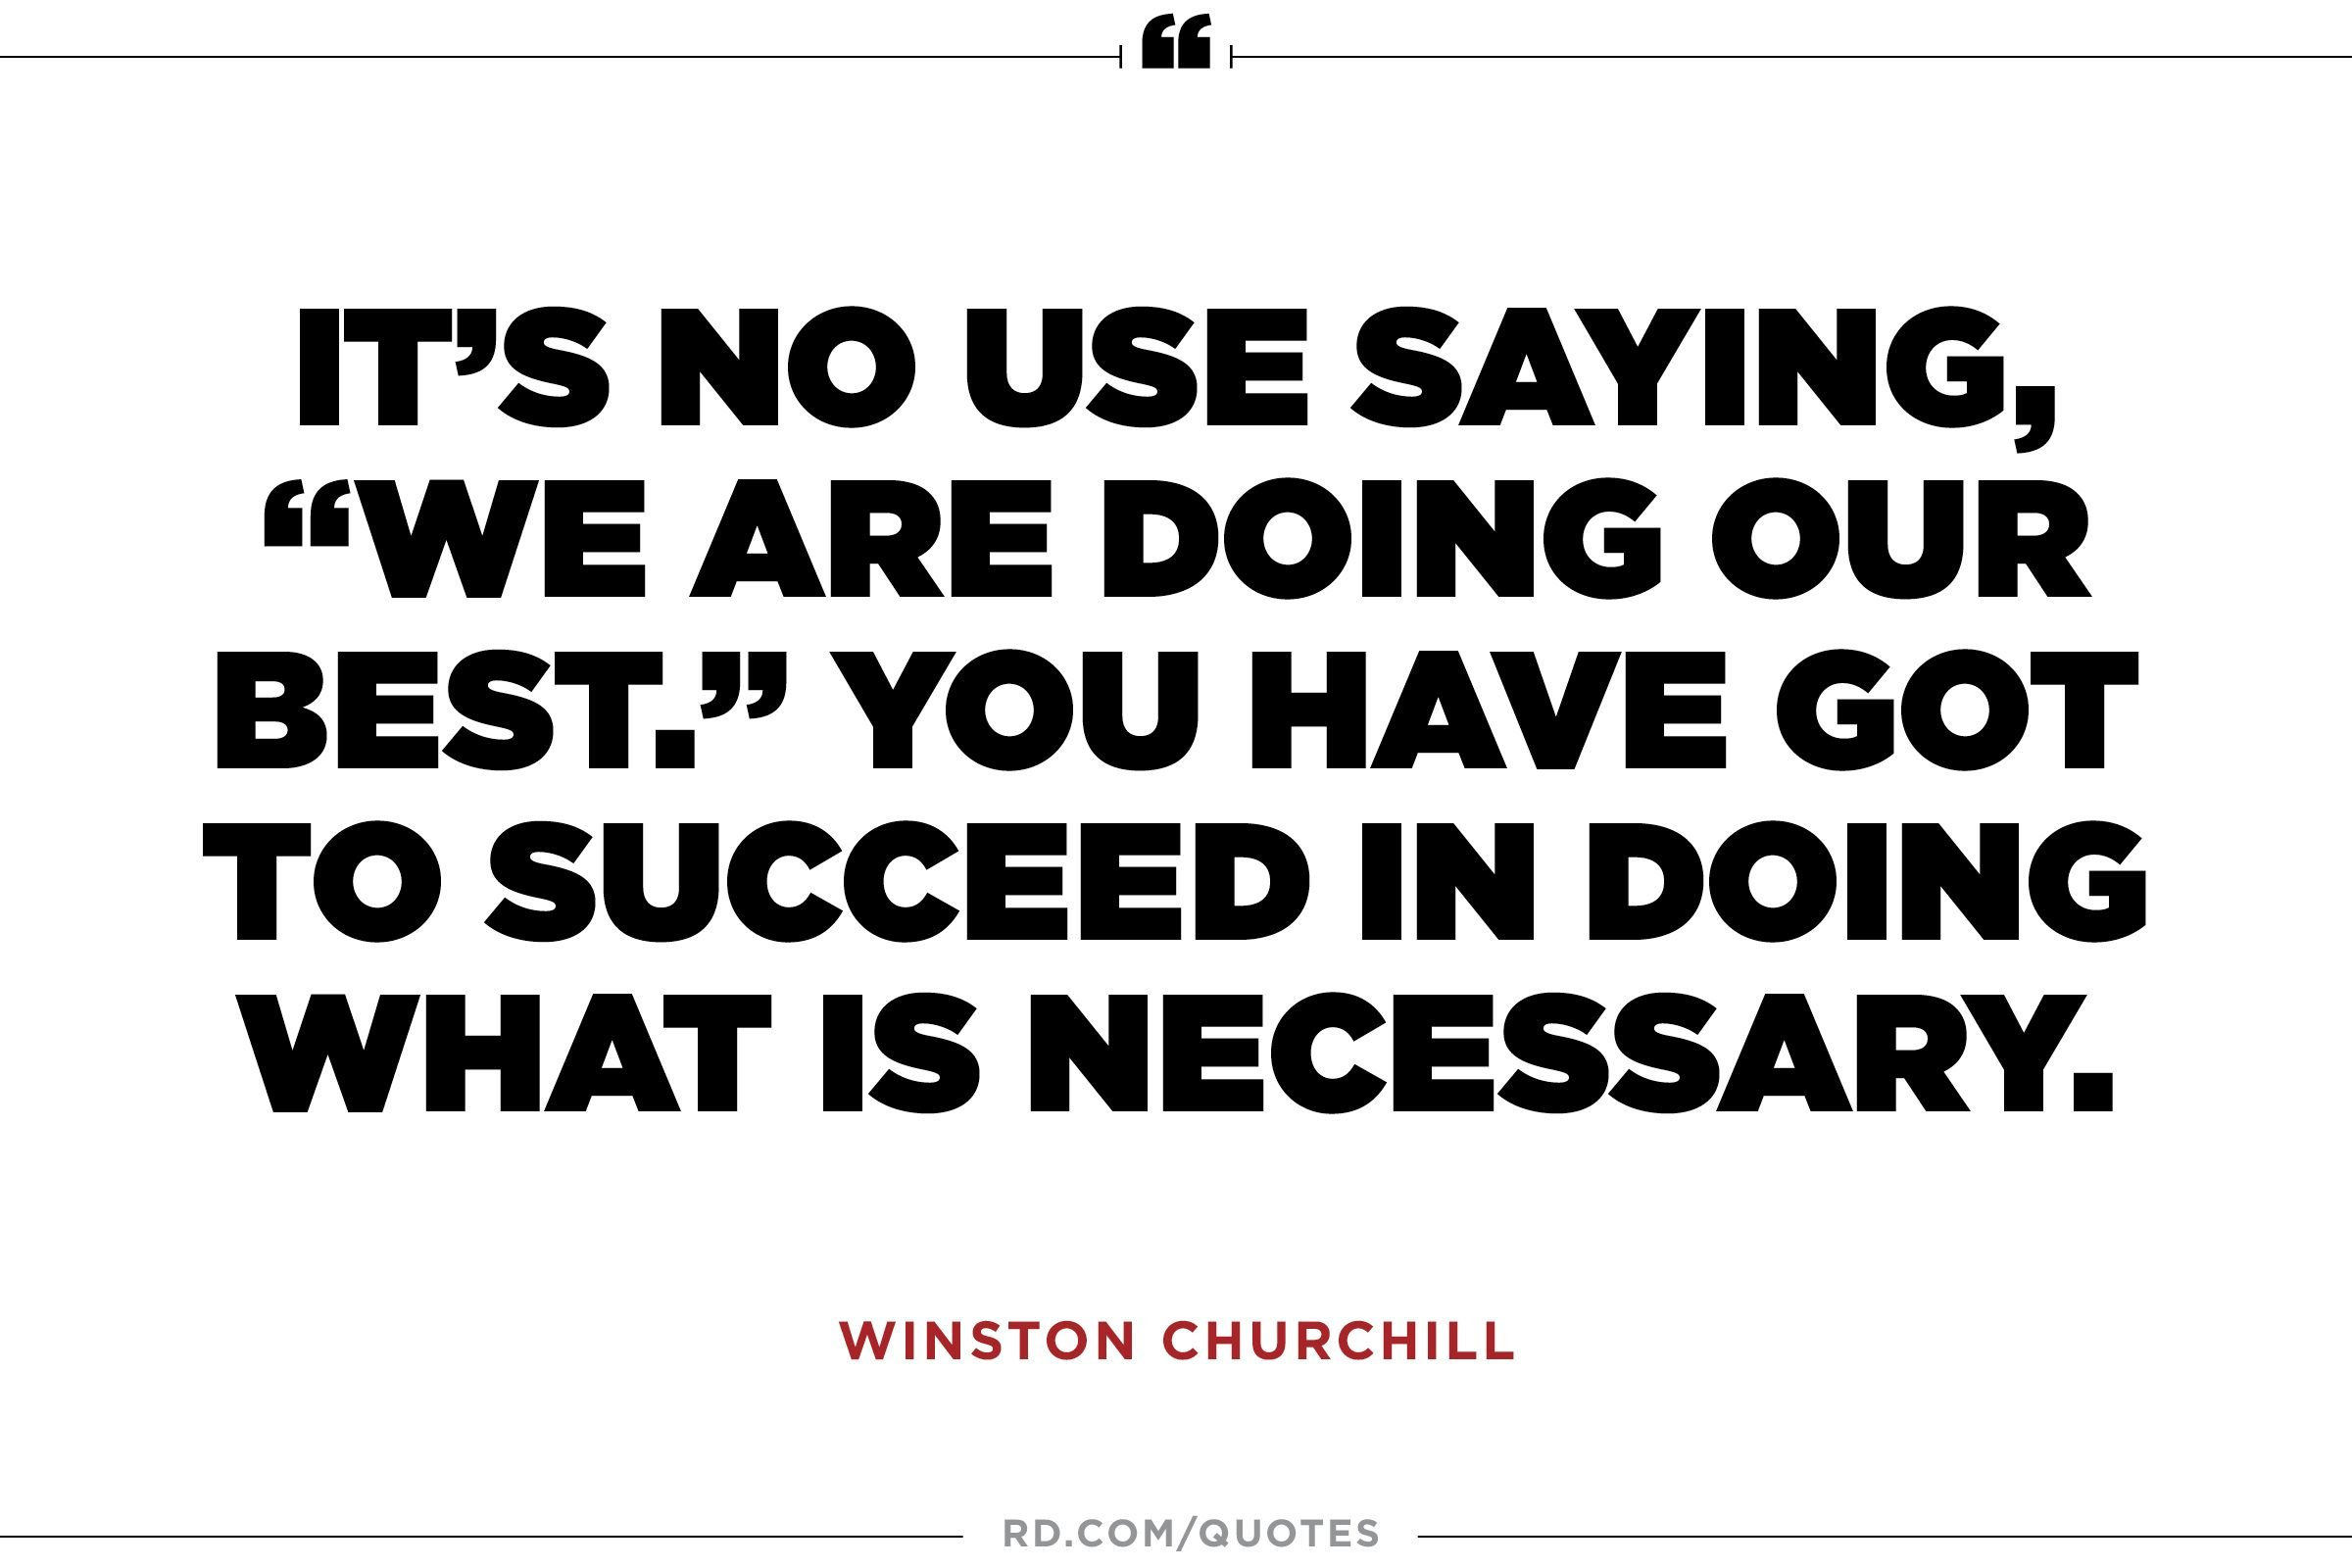 Winston Churchill Love Quotes 10 Winston Churchill Quotes That Get You To The Corner Office